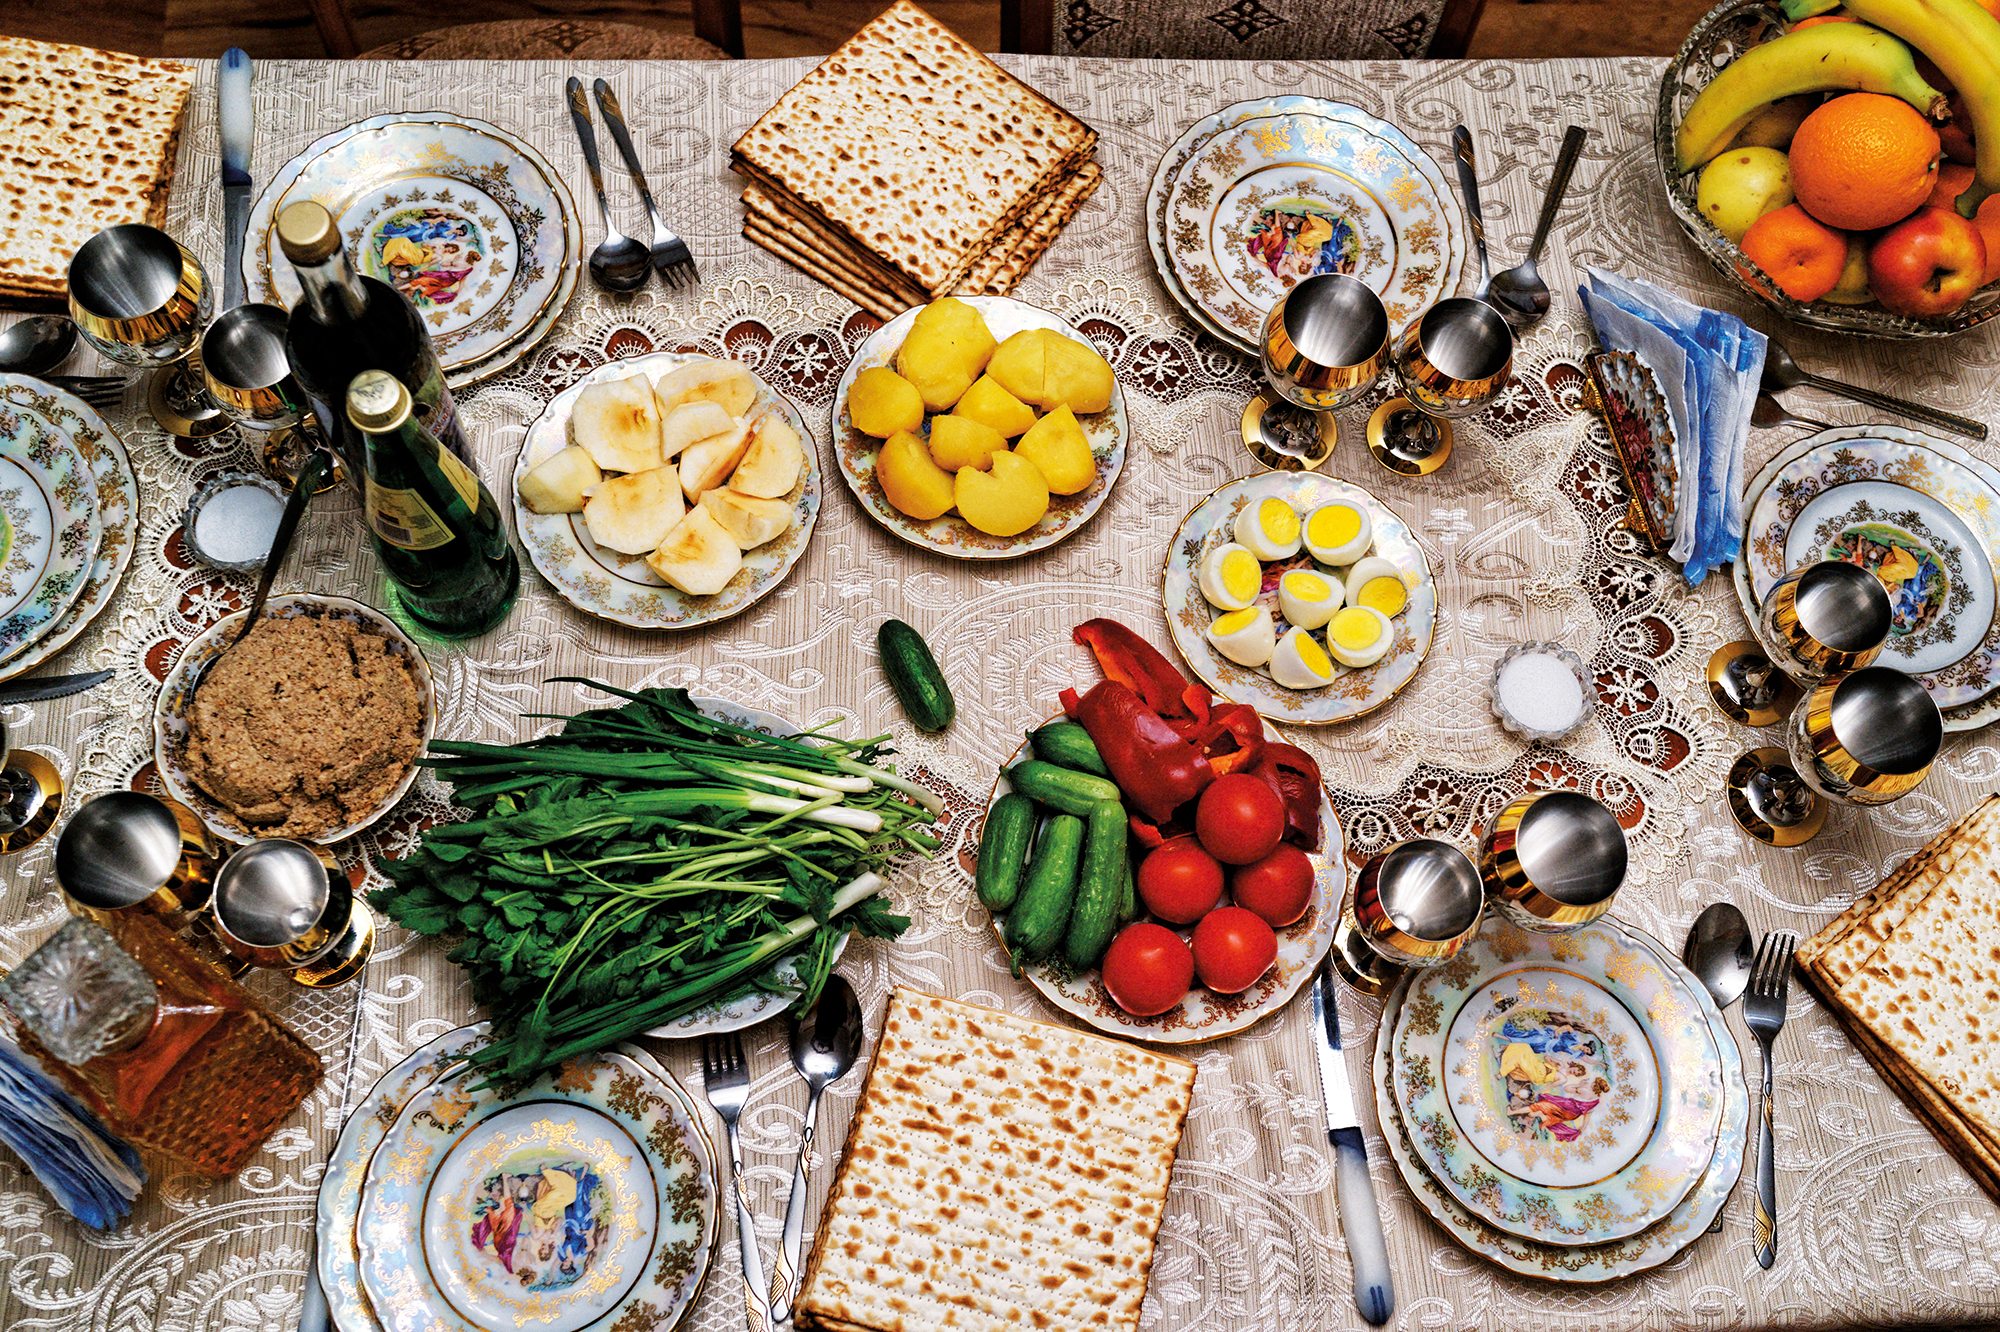 Beans and Rice For Passover? A Divisive Question Gets the Rabbis' OK | WGBH | Craving Boston